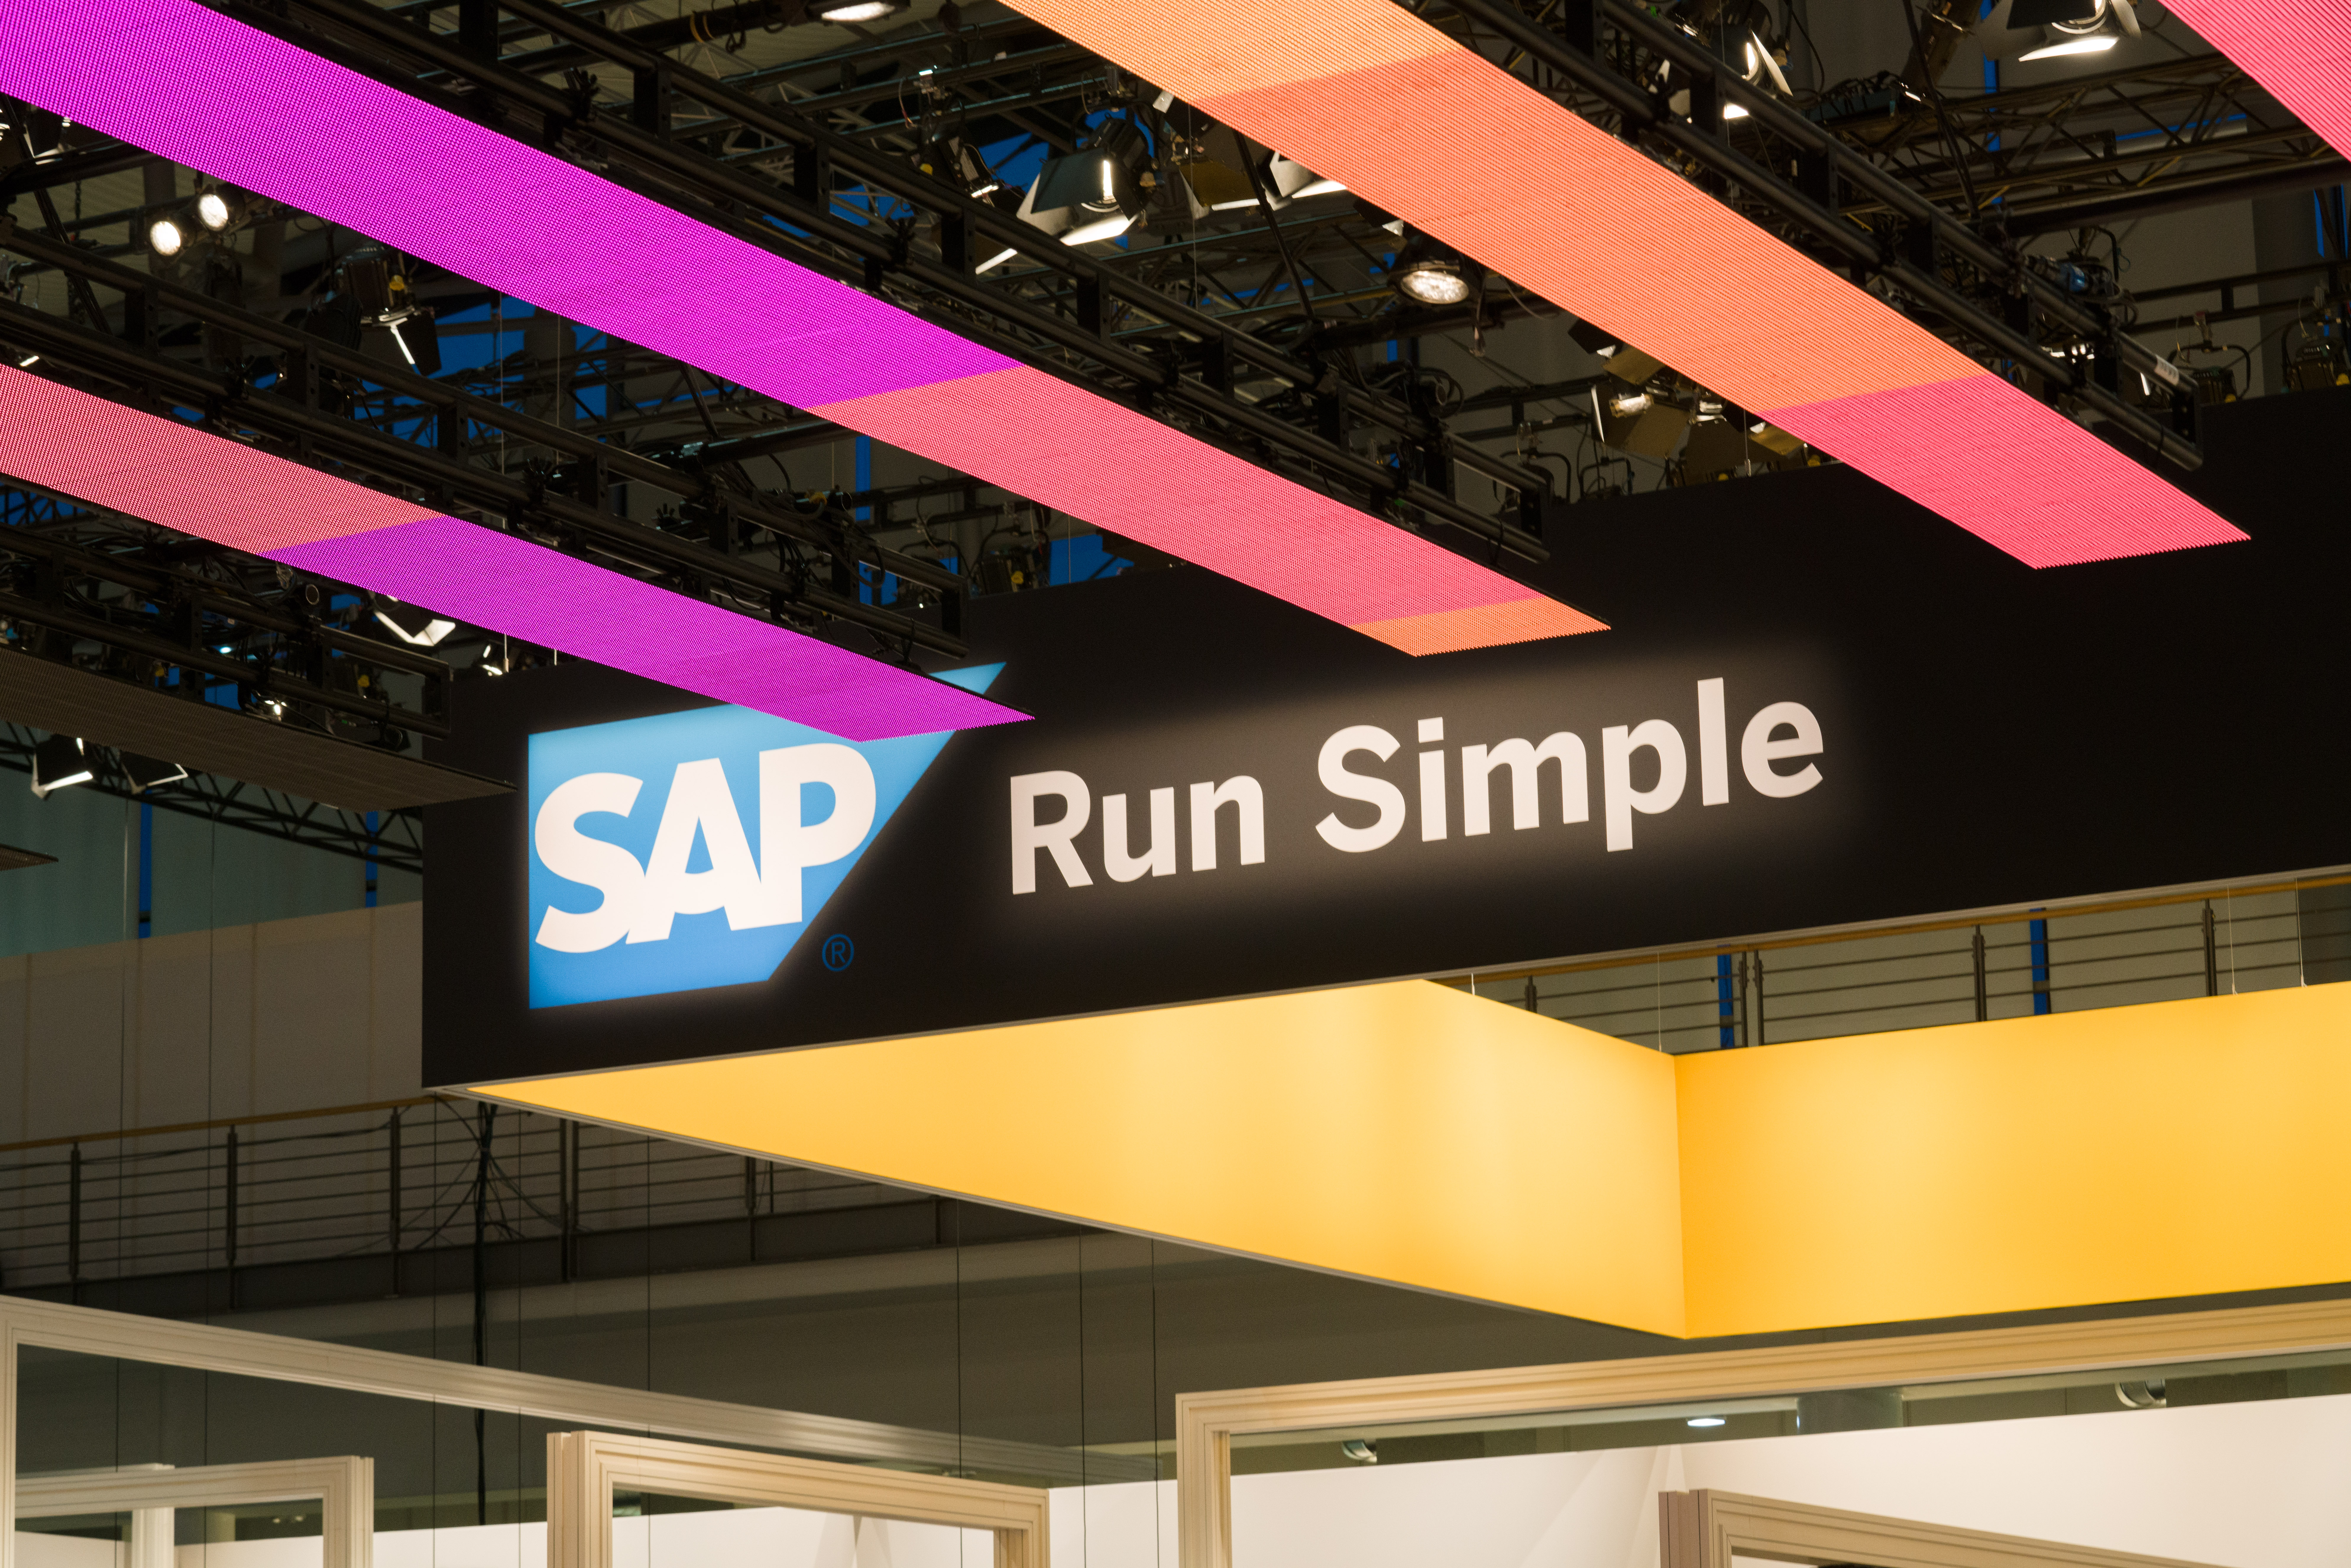 SAP SI at Cebit Hannover, Germany on March 20, 2017